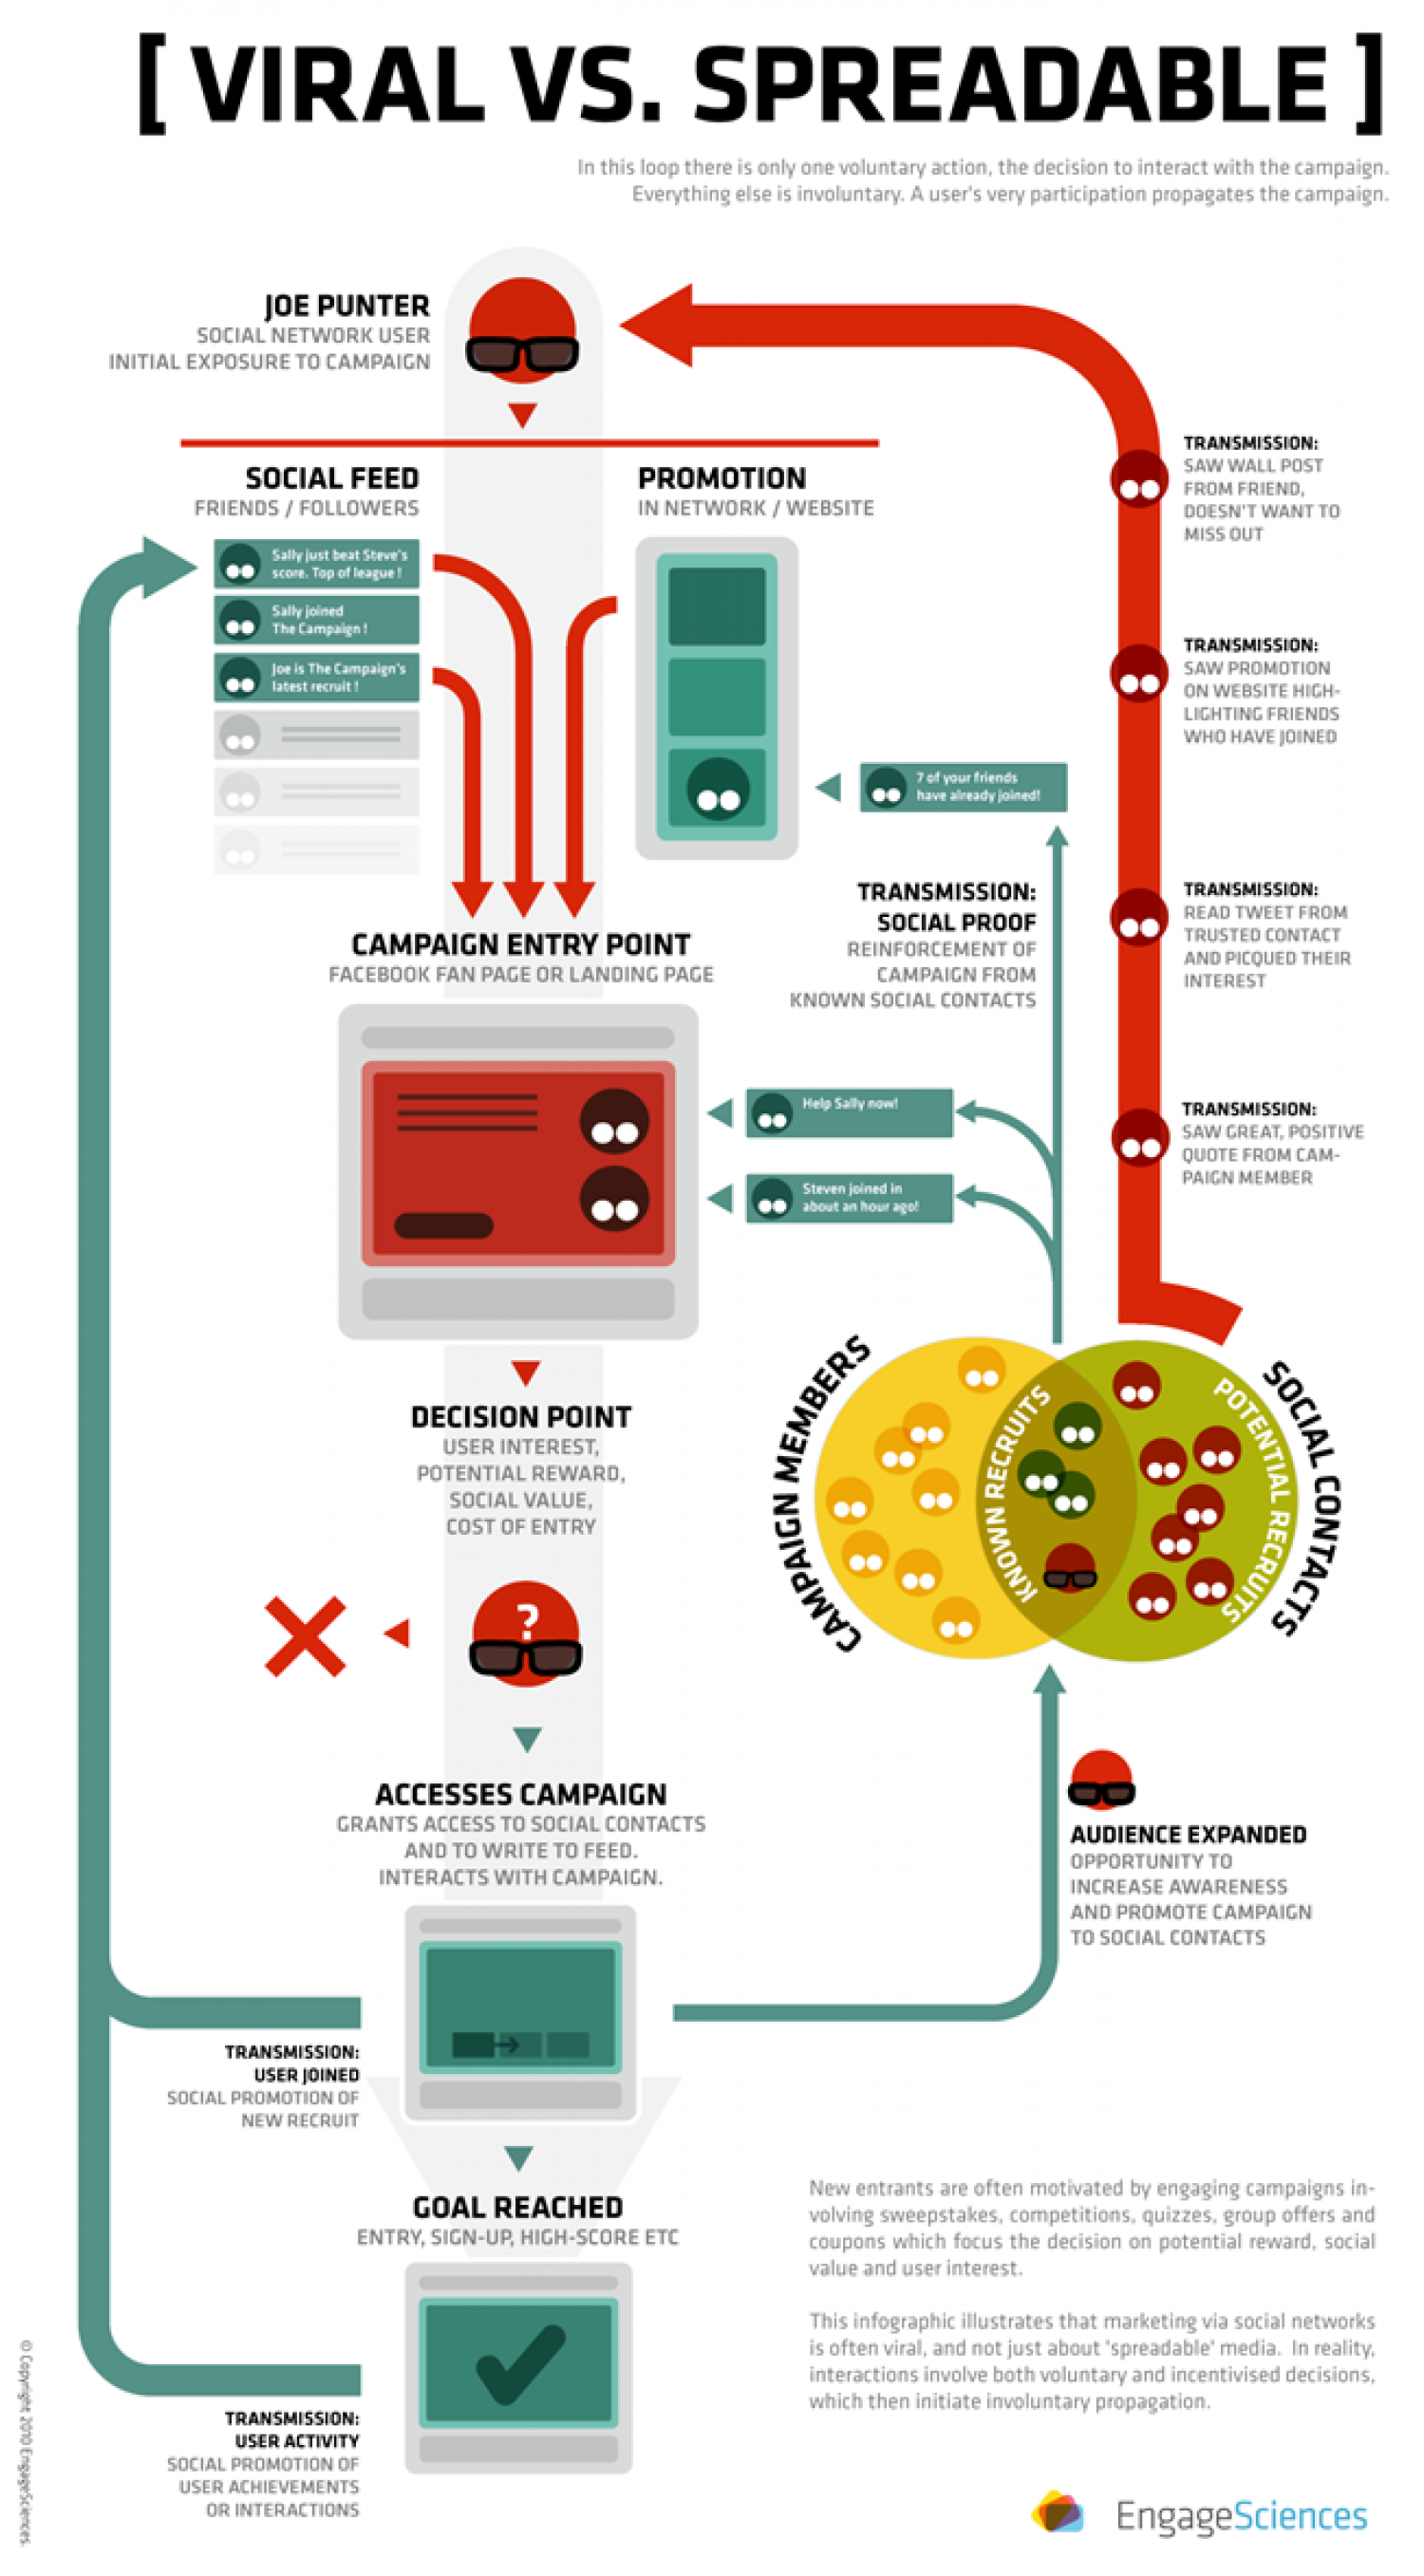 Viral Marketing Vs Spreadable Marketing  Infographic